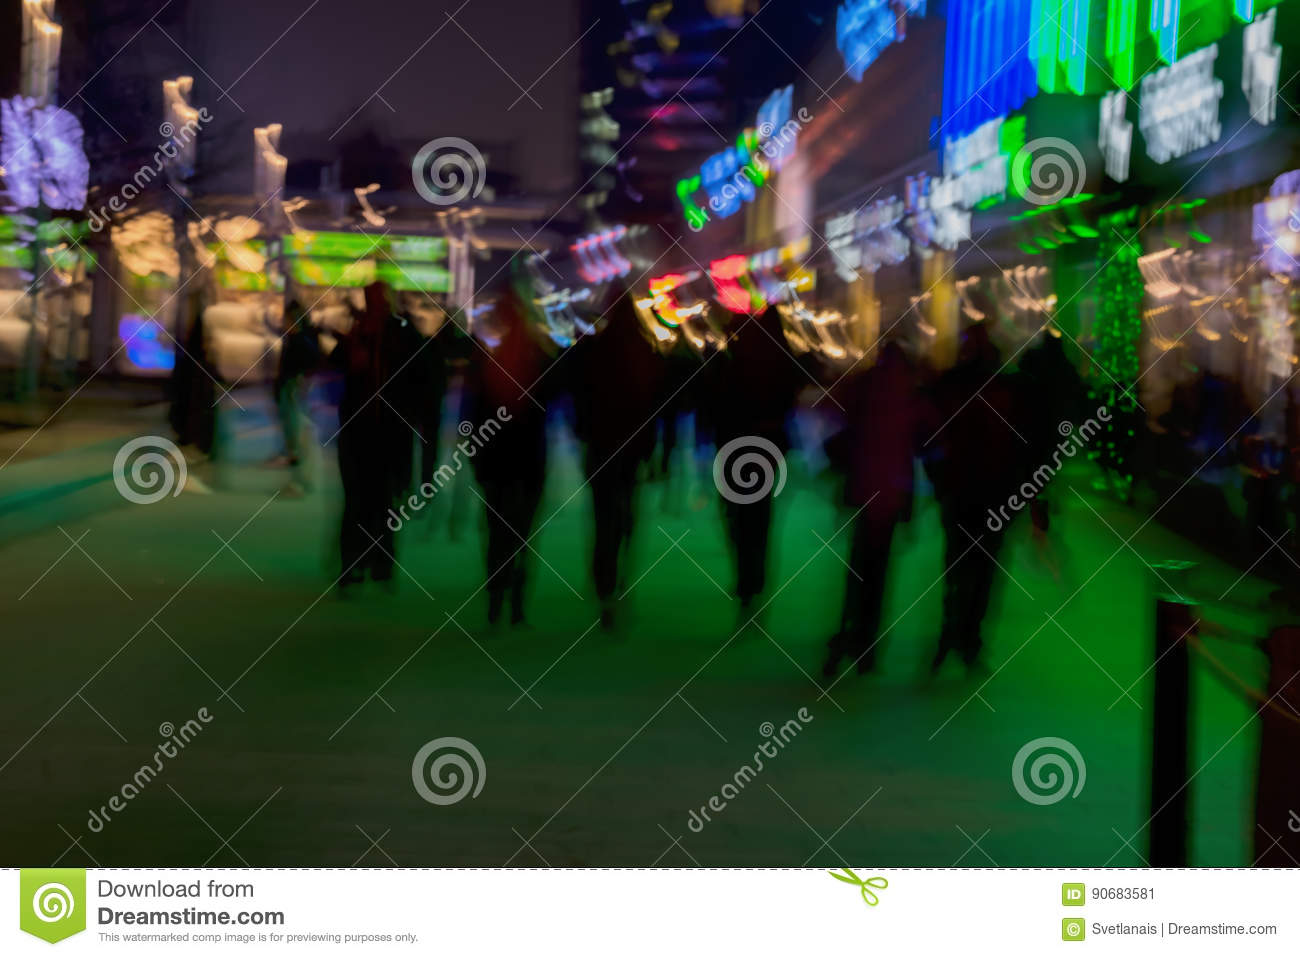 Abstract background. Intentional motion blur. Group of young people going along the street. Green shop window